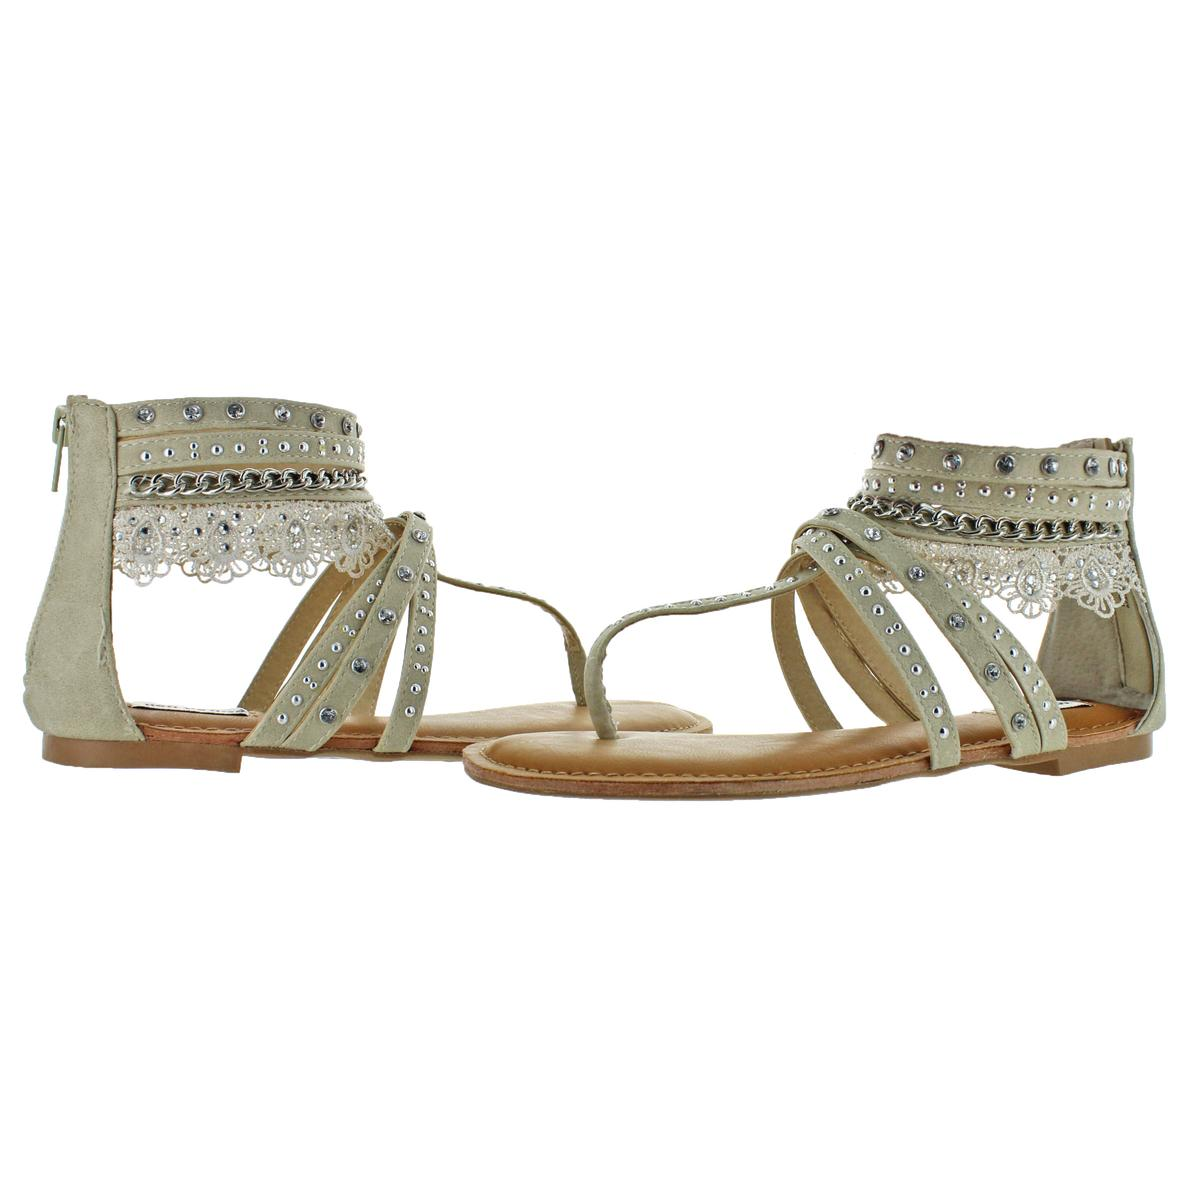 Not-Rated-Women-039-s-Willow-Faux-Leather-Studded-Thong-Gladiator-Sandals thumbnail 6